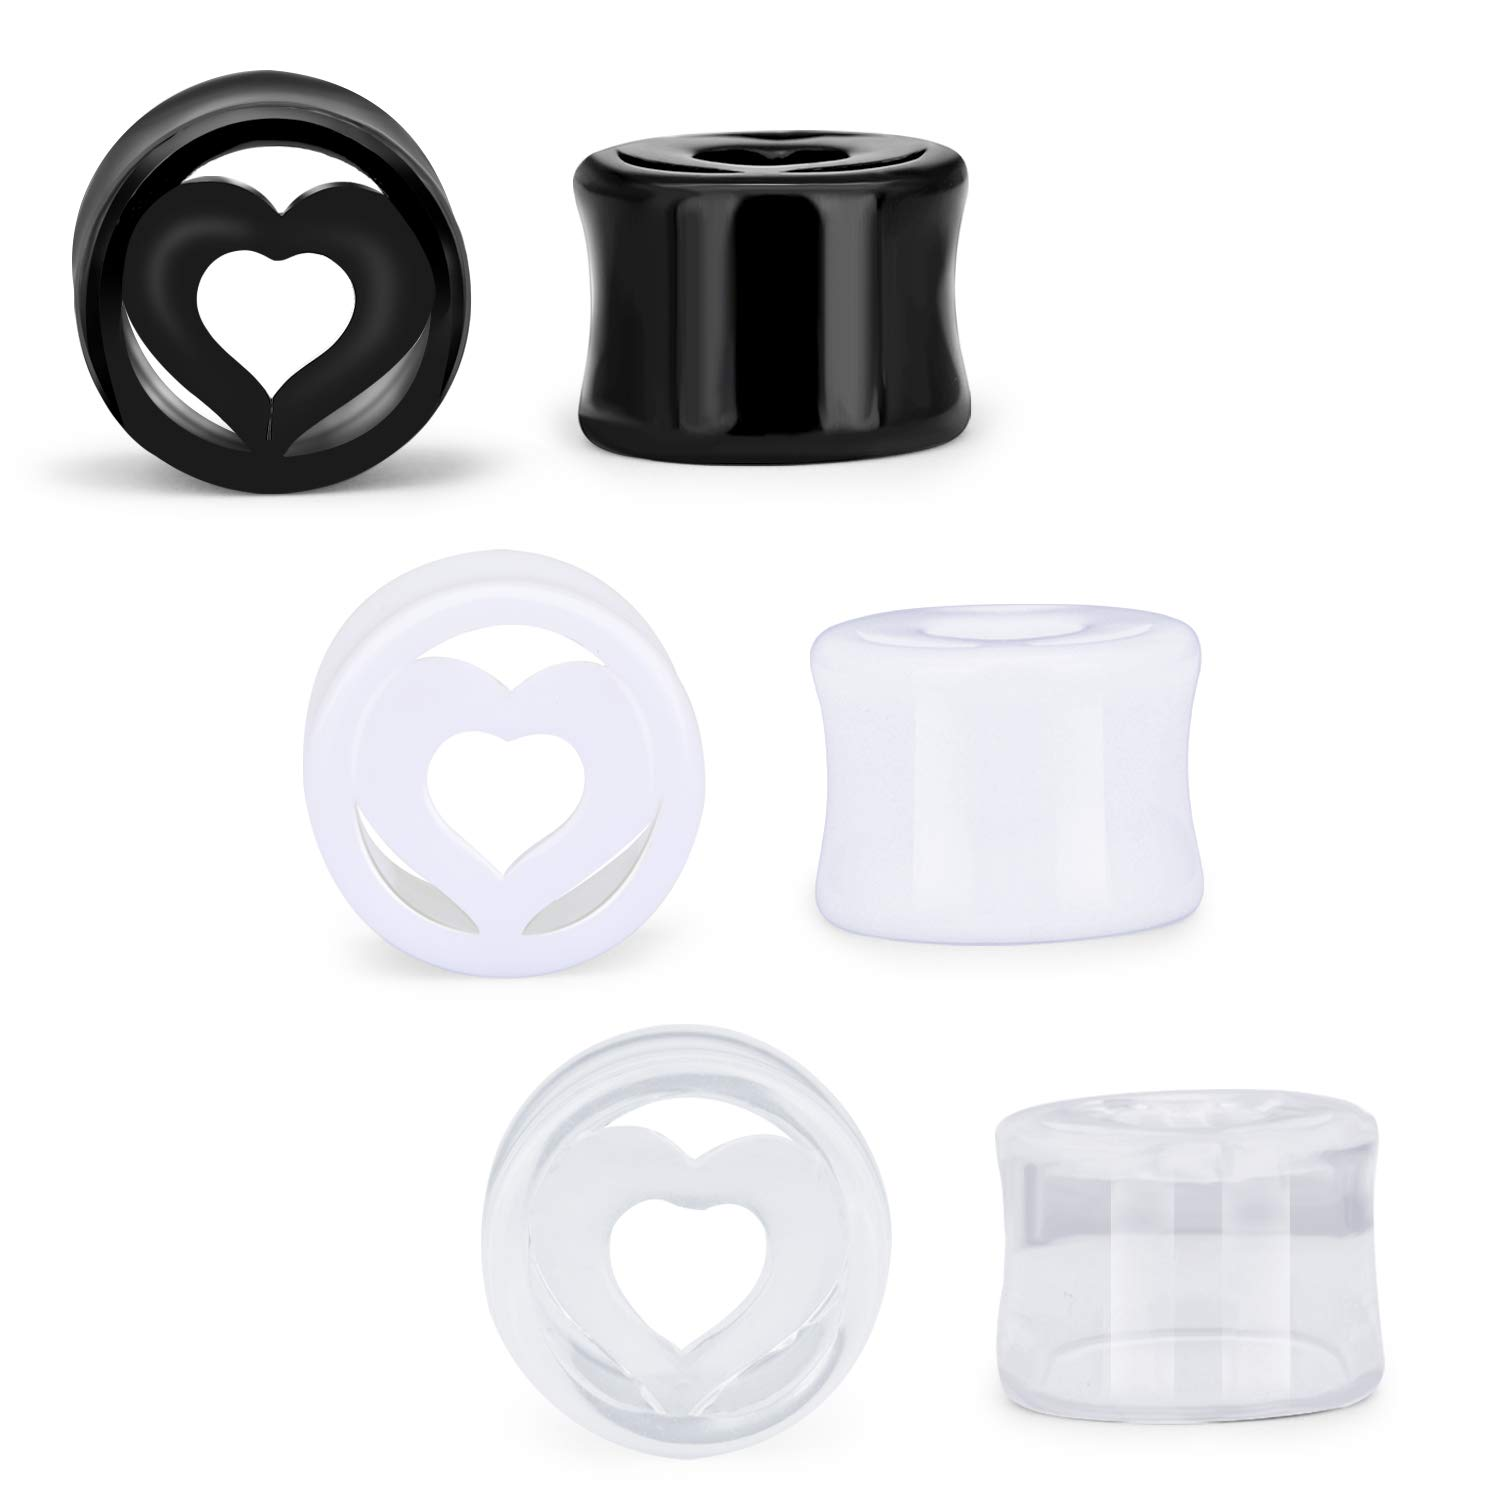 AVYRING Dilatacion Oreja 10mm 00G Ear Tunnel Plugs Expander ...